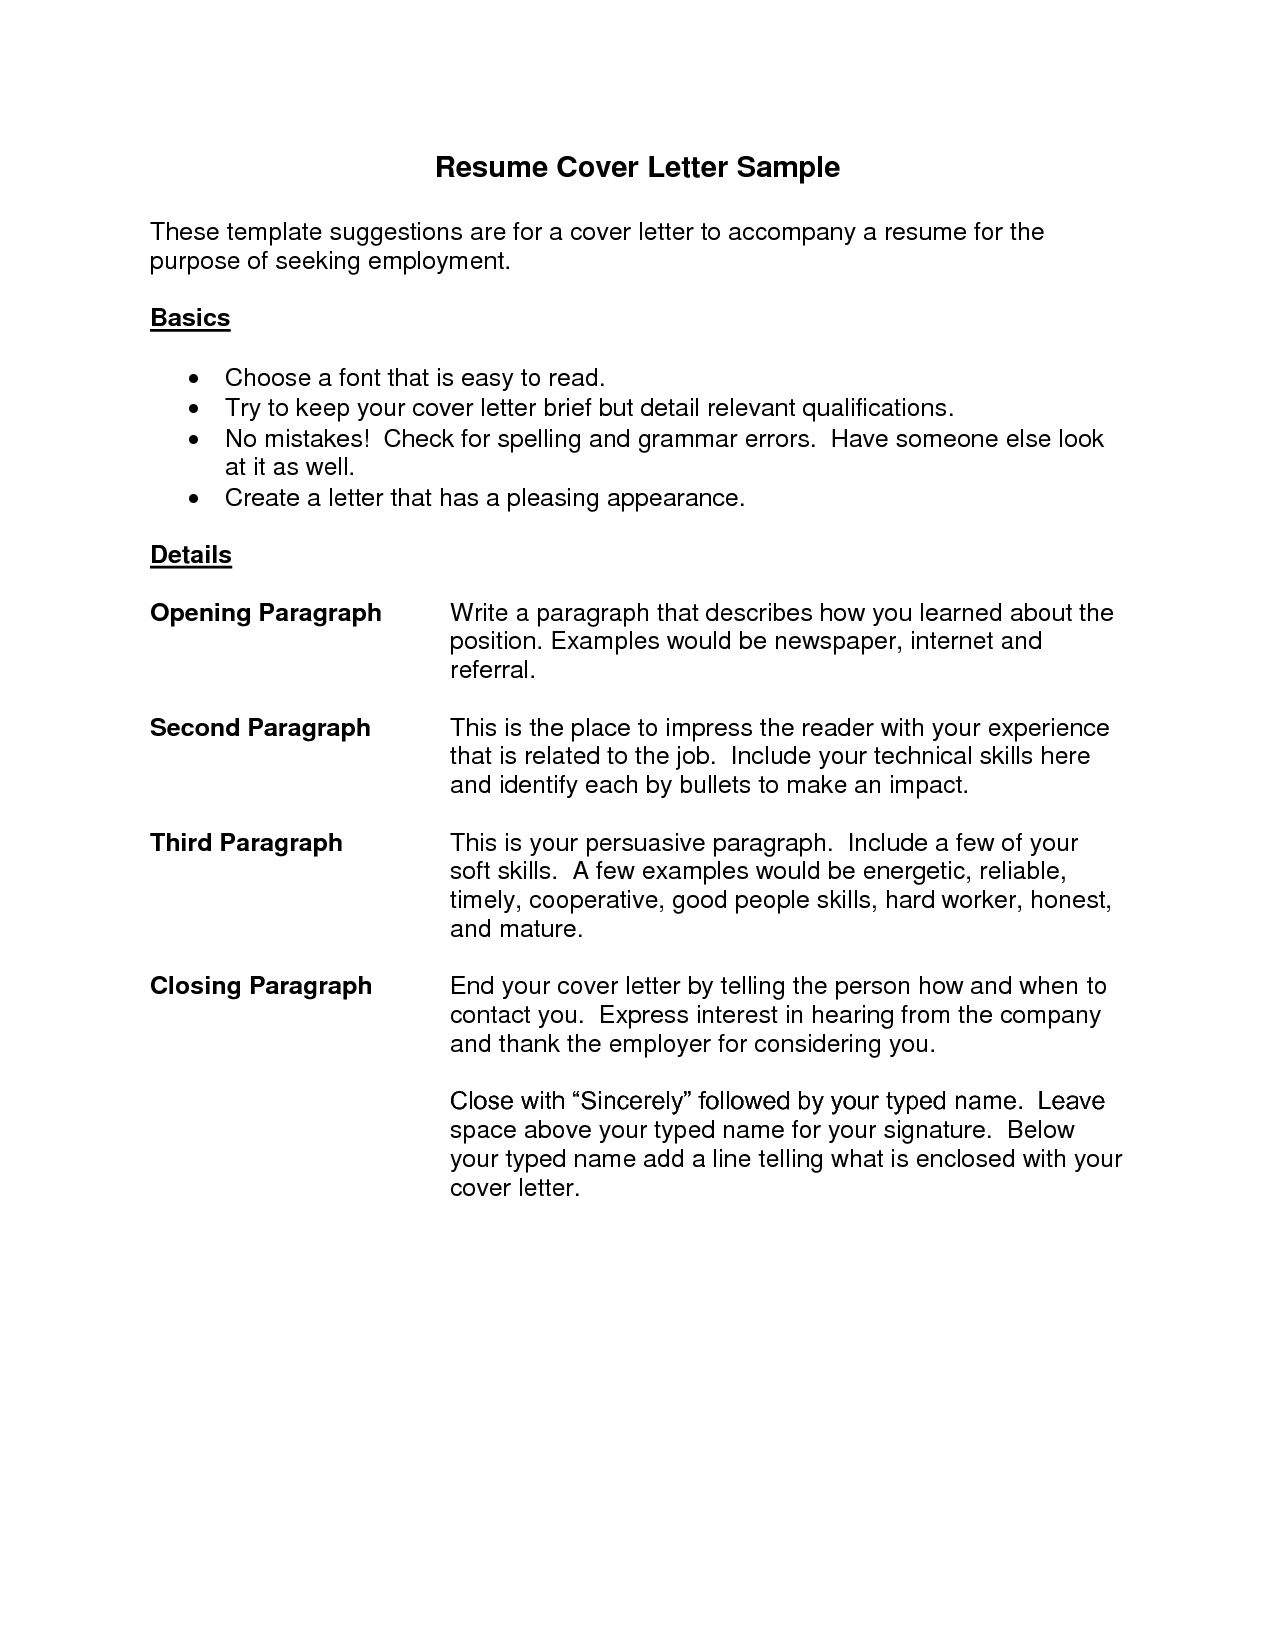 Cover Letter Resume Best TemplateSimple